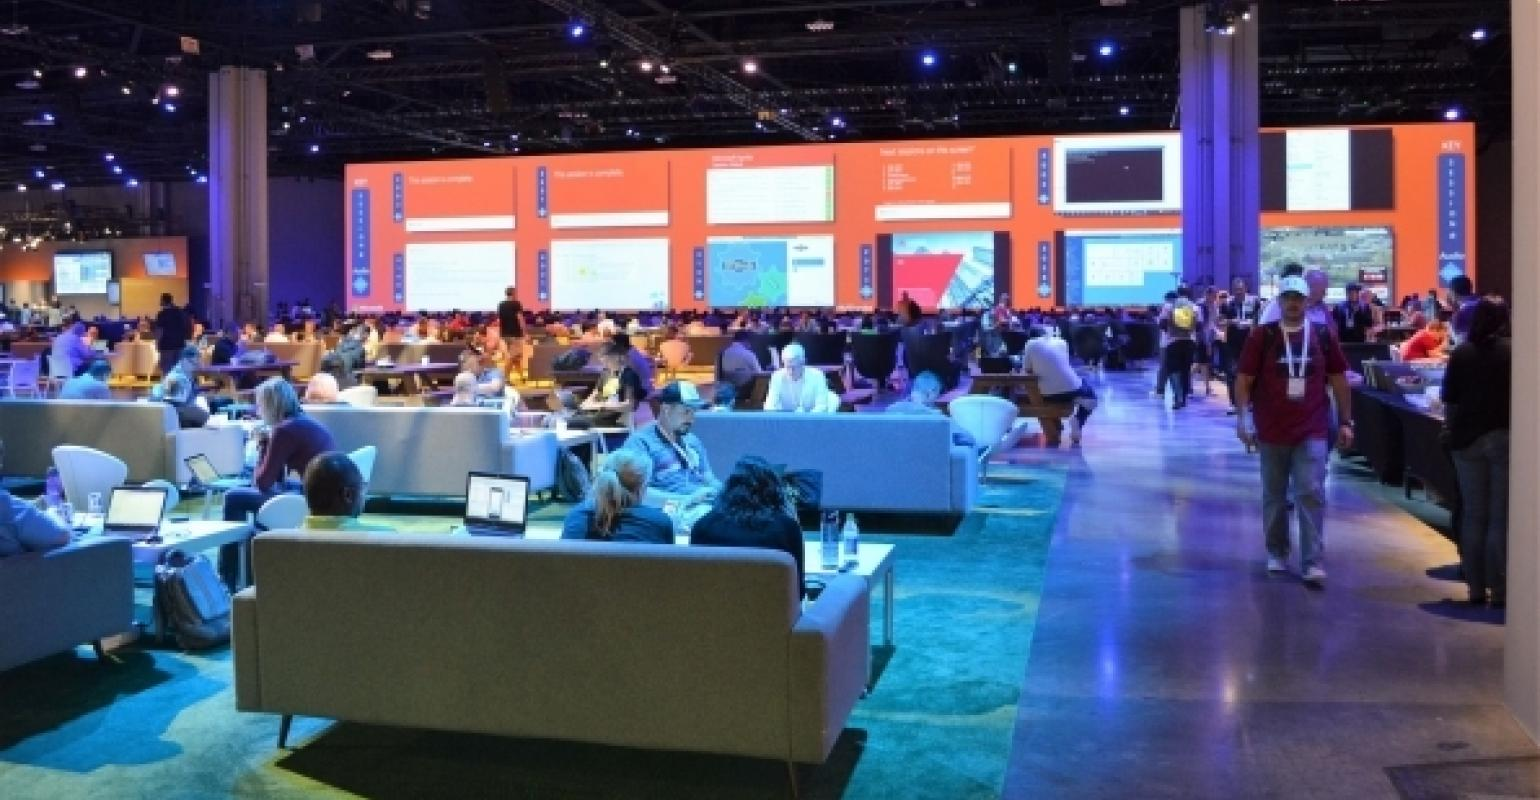 Download the Microsoft Ignite Apps to Prepare and Maintain